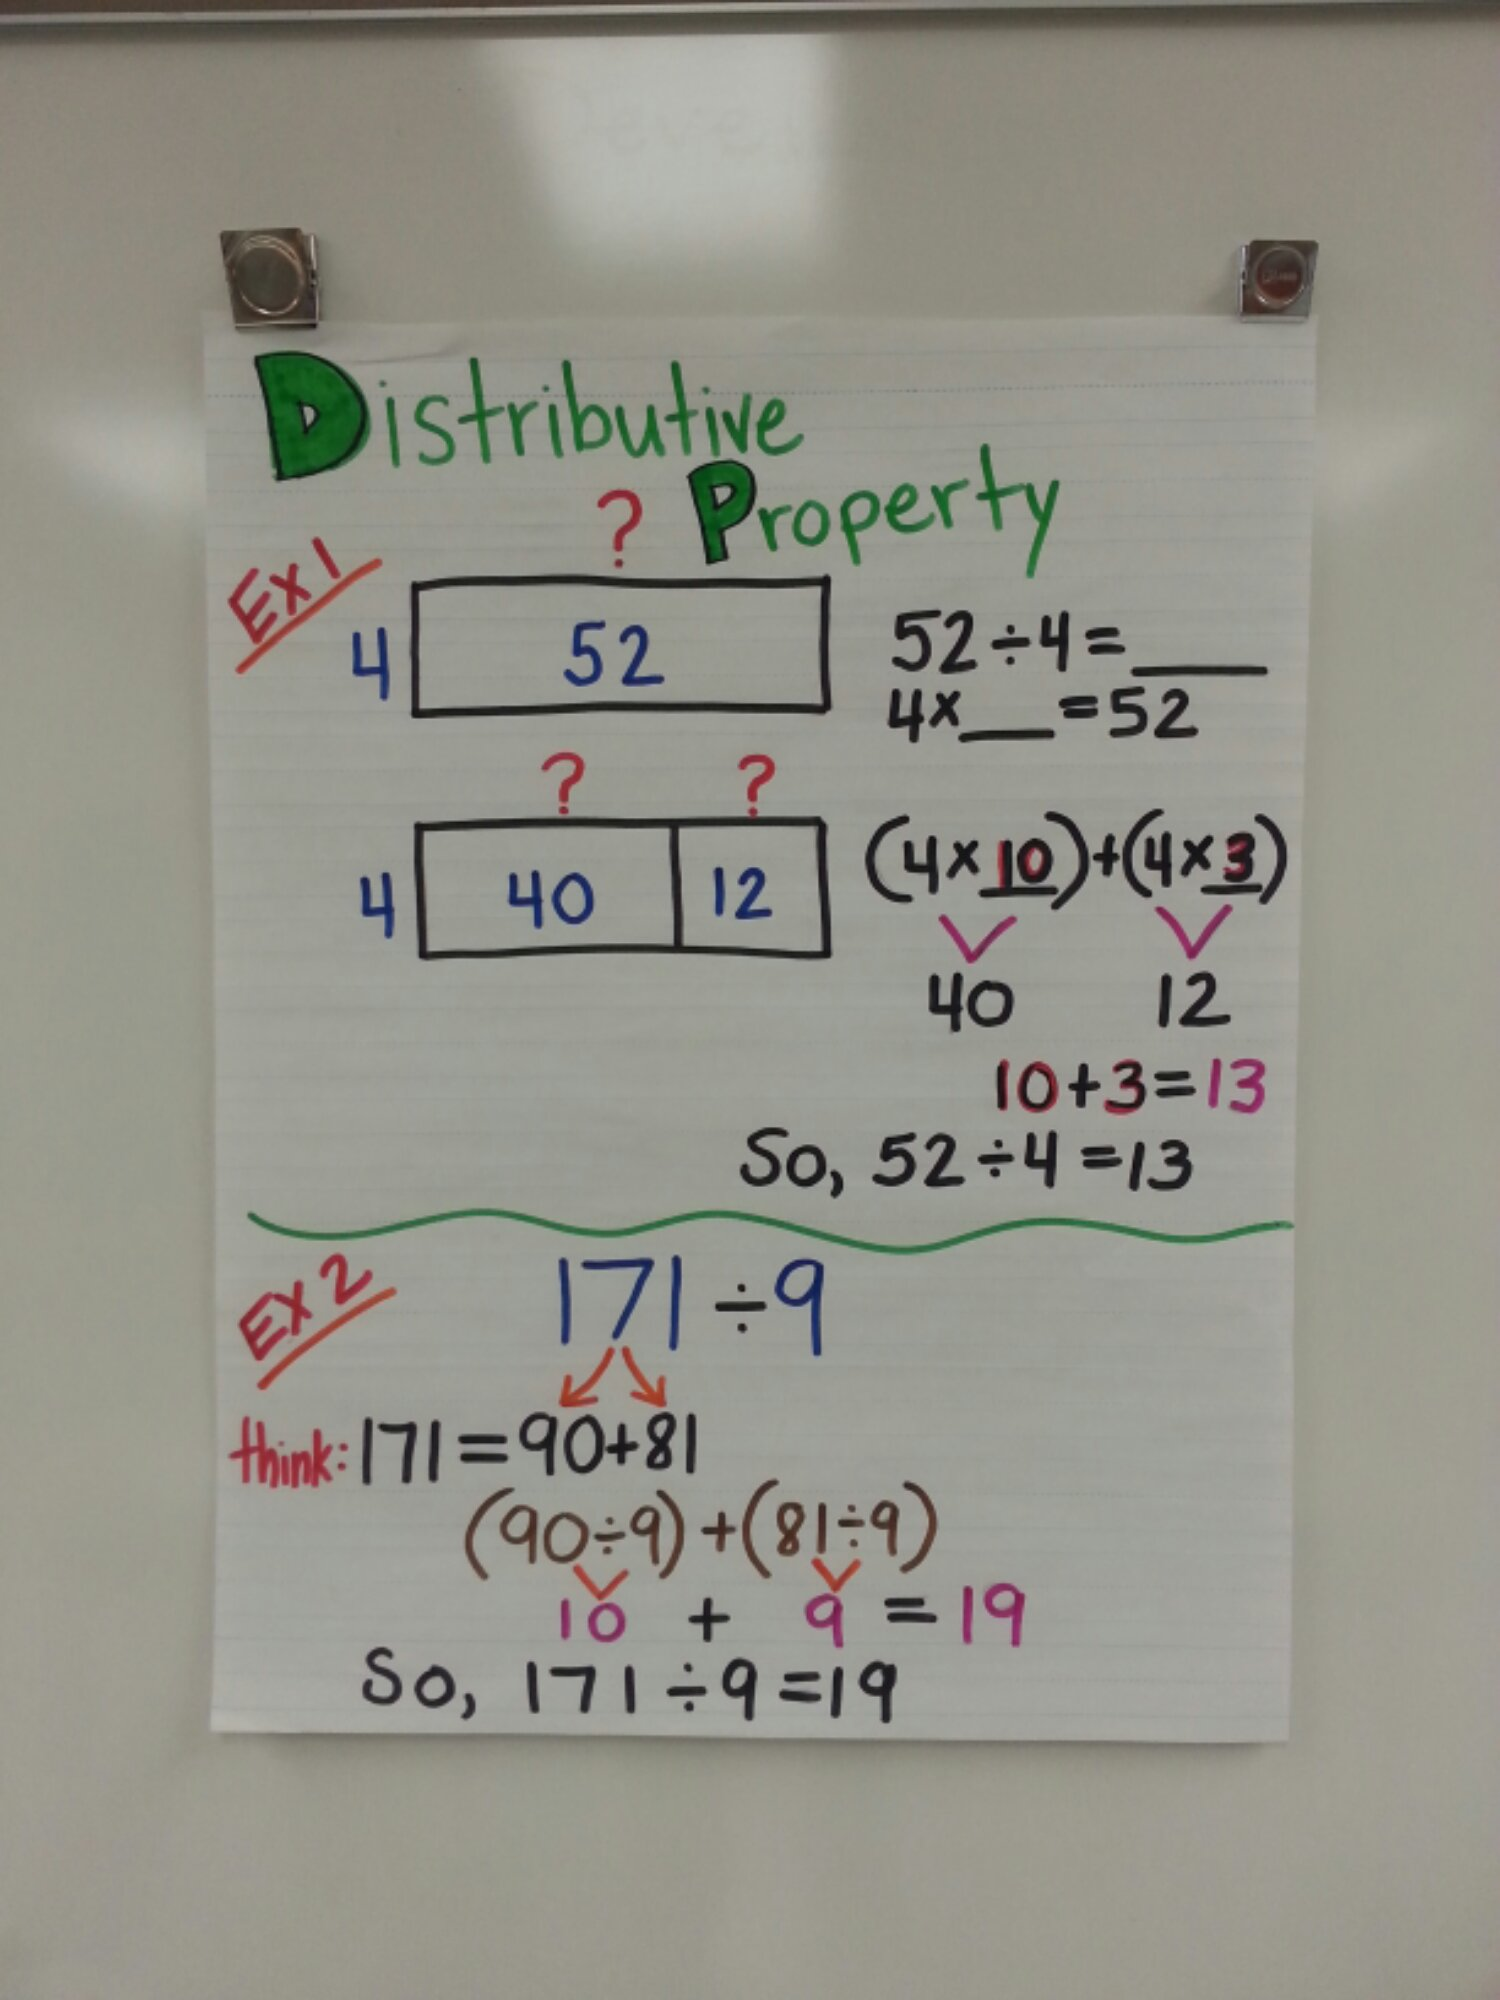 Distributive Property Mrstynunez